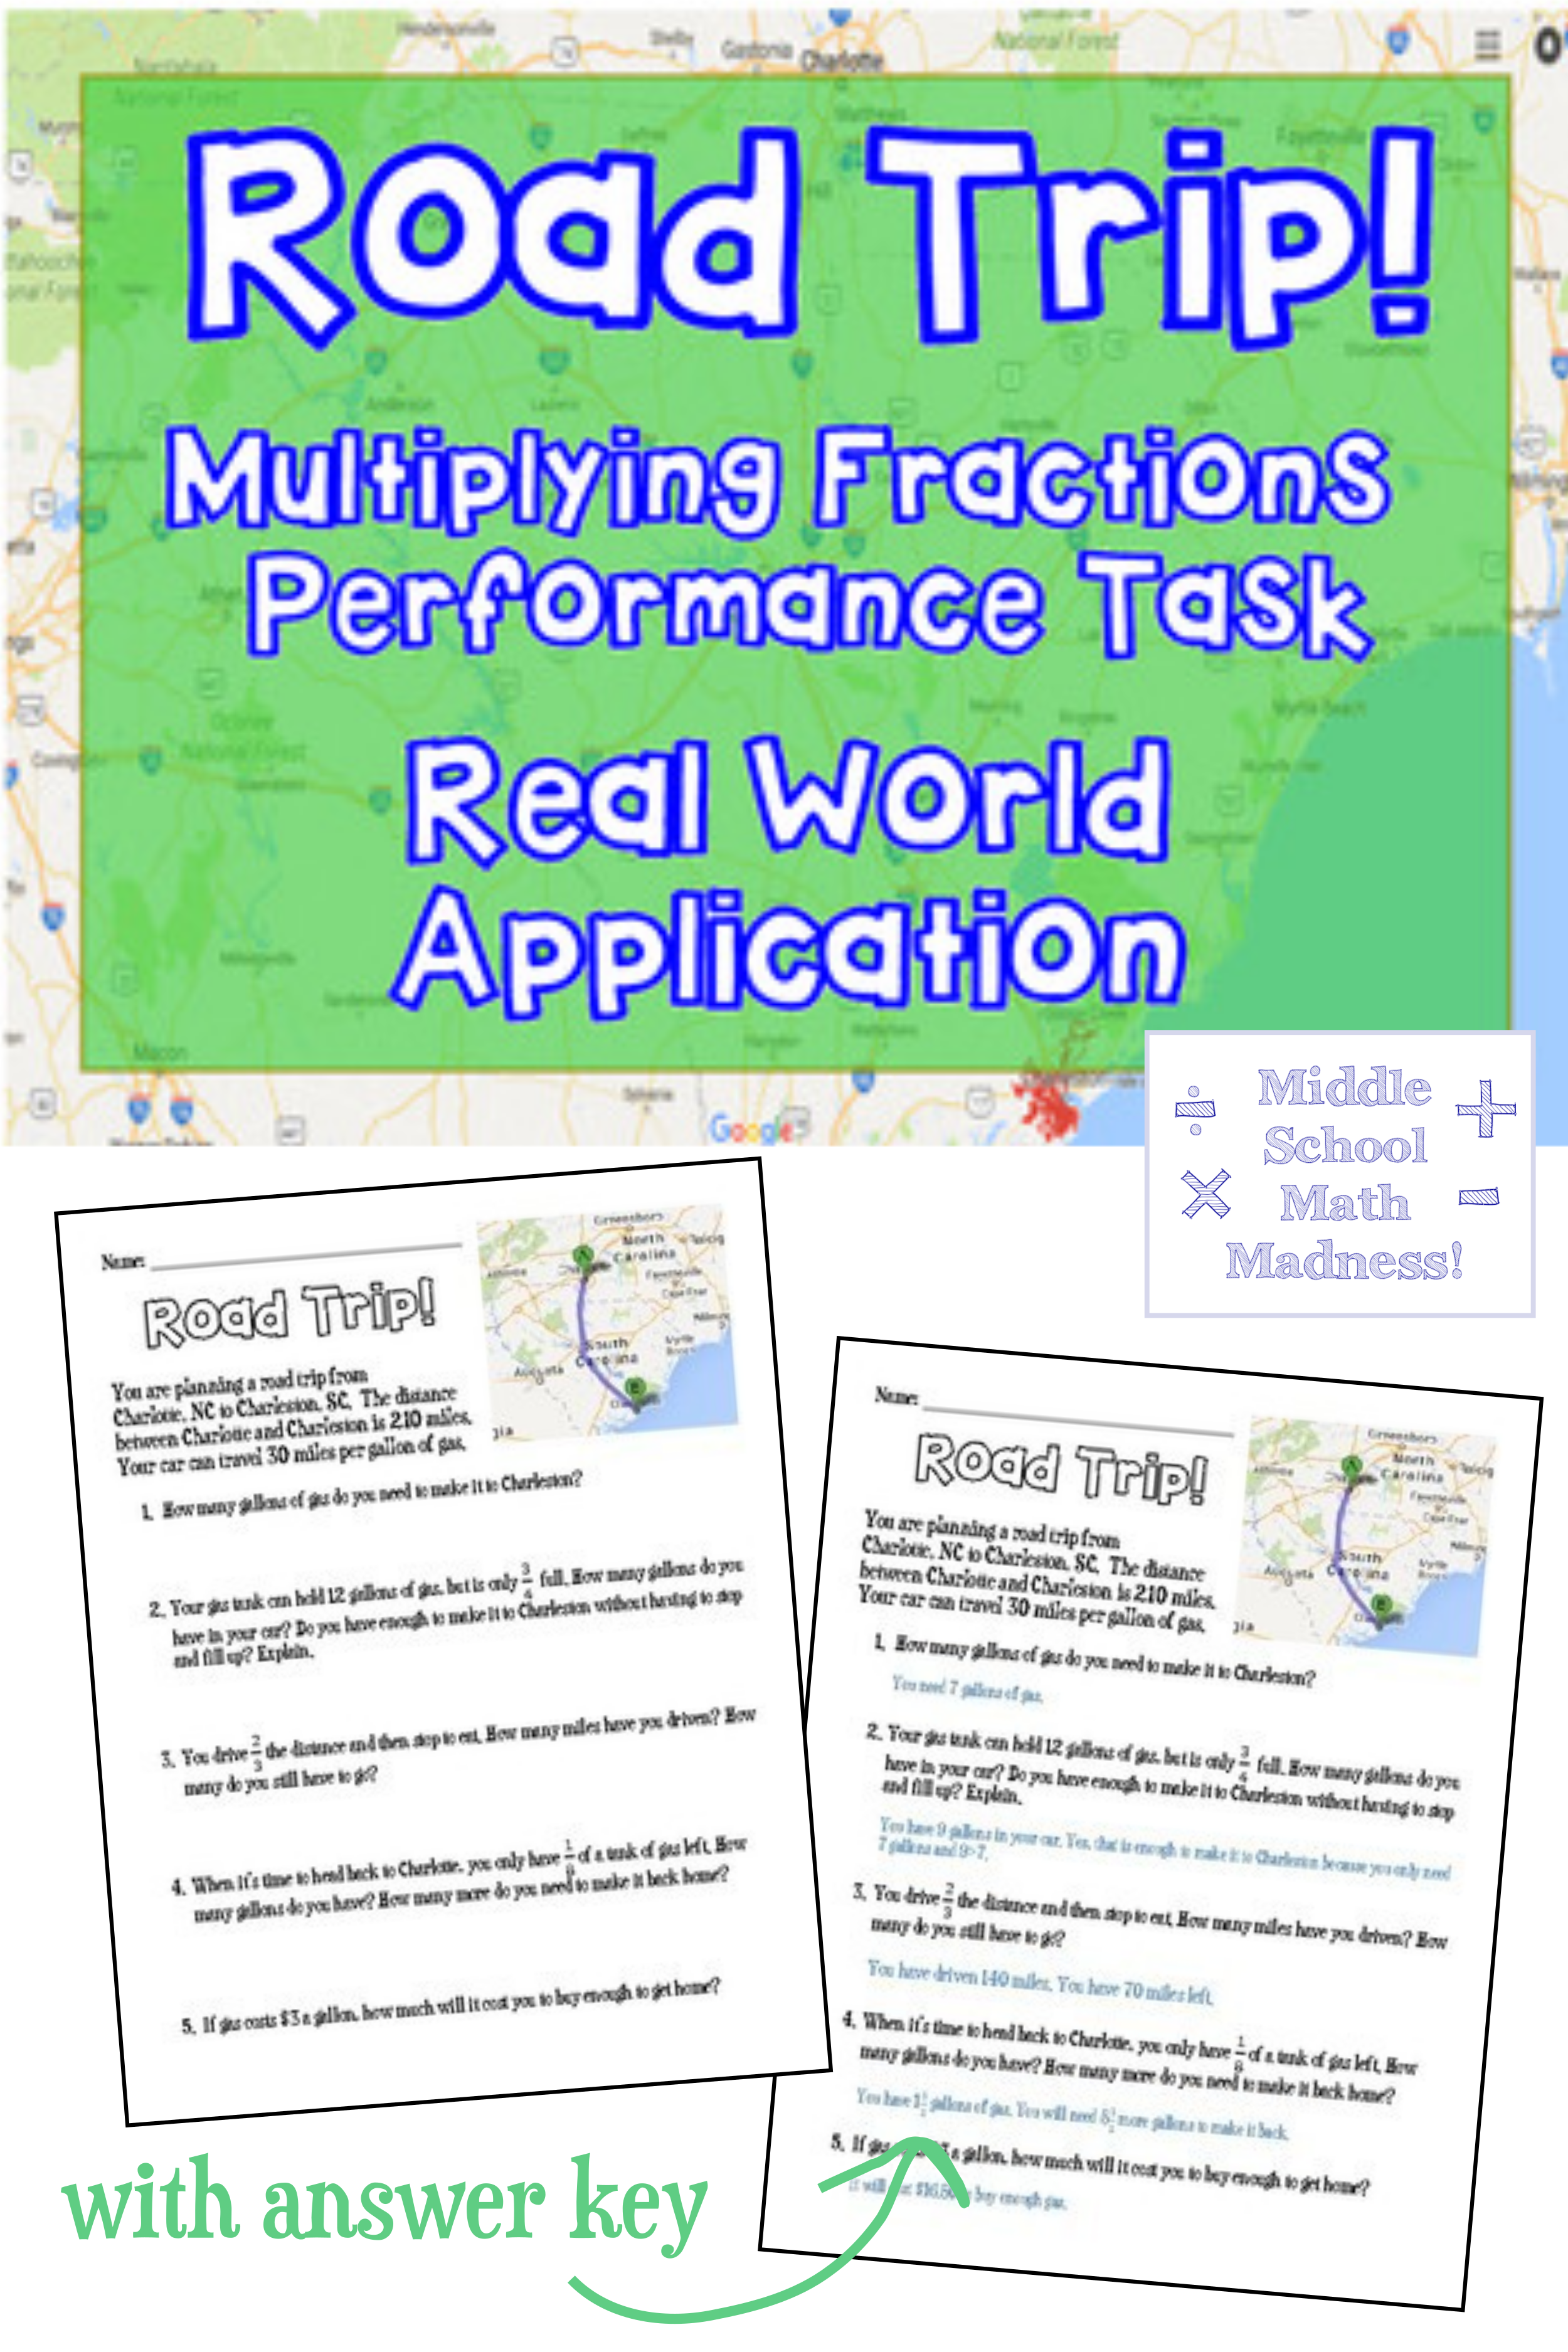 Multiplying Fractions Road Trip Performance Task Real